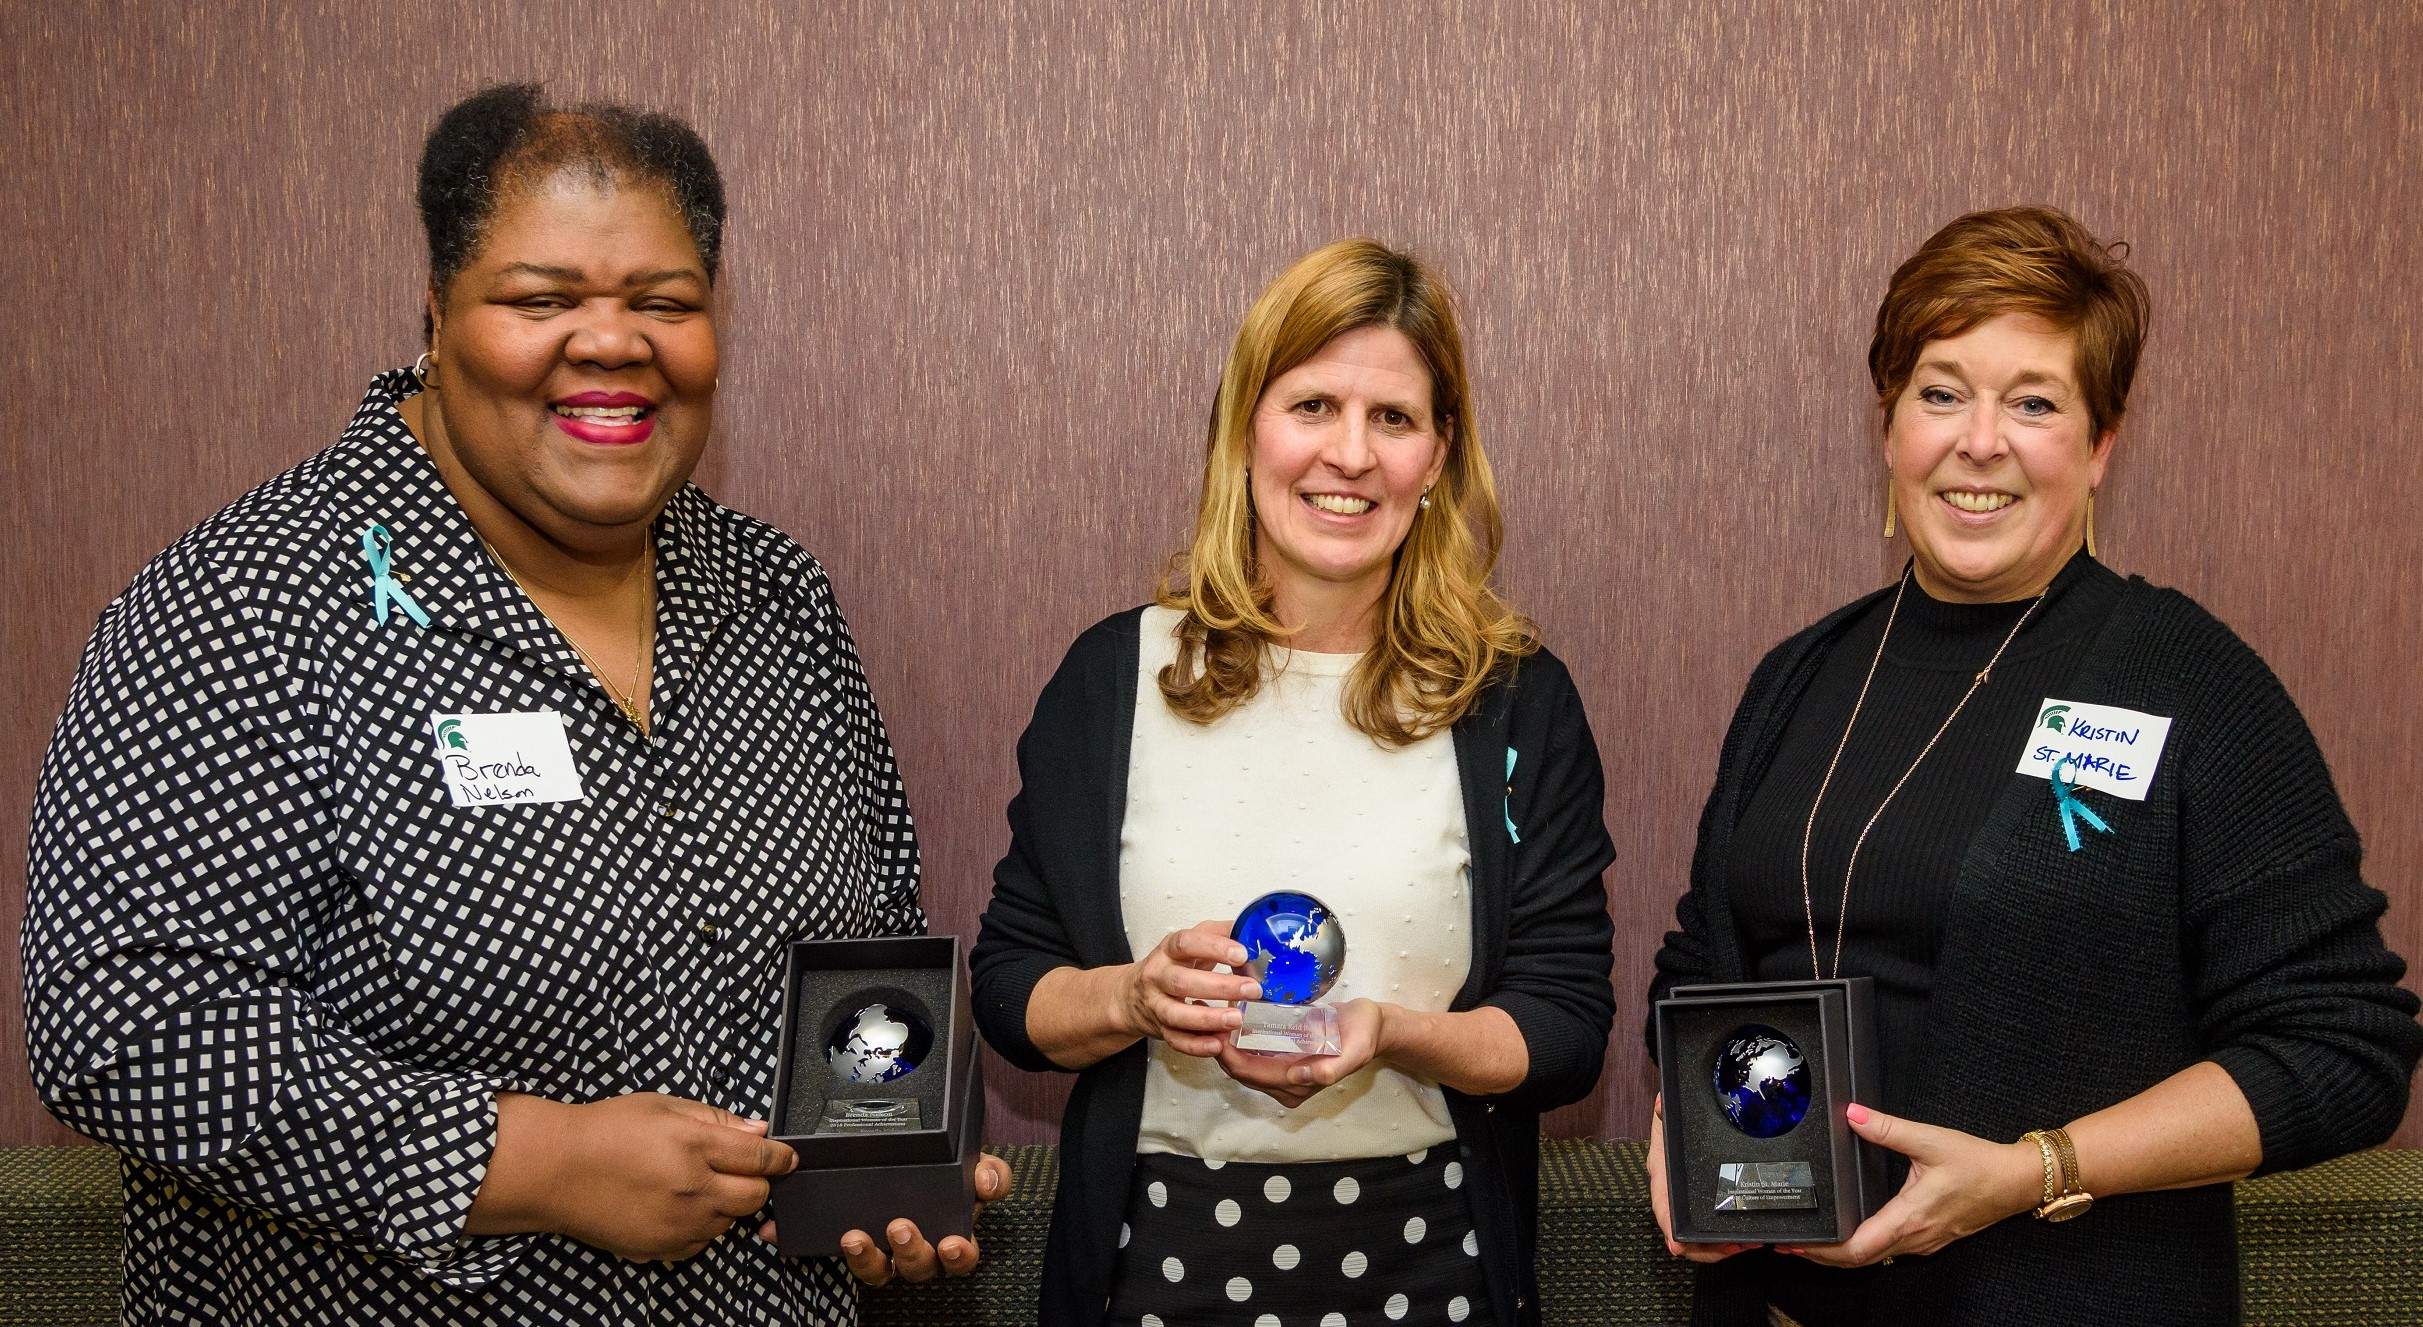 The 2018 Inspirational Woman of the Year Awardees. Left to right: Brenda Nelson, Tamara Reid Bush, and Kristin St. Marie.